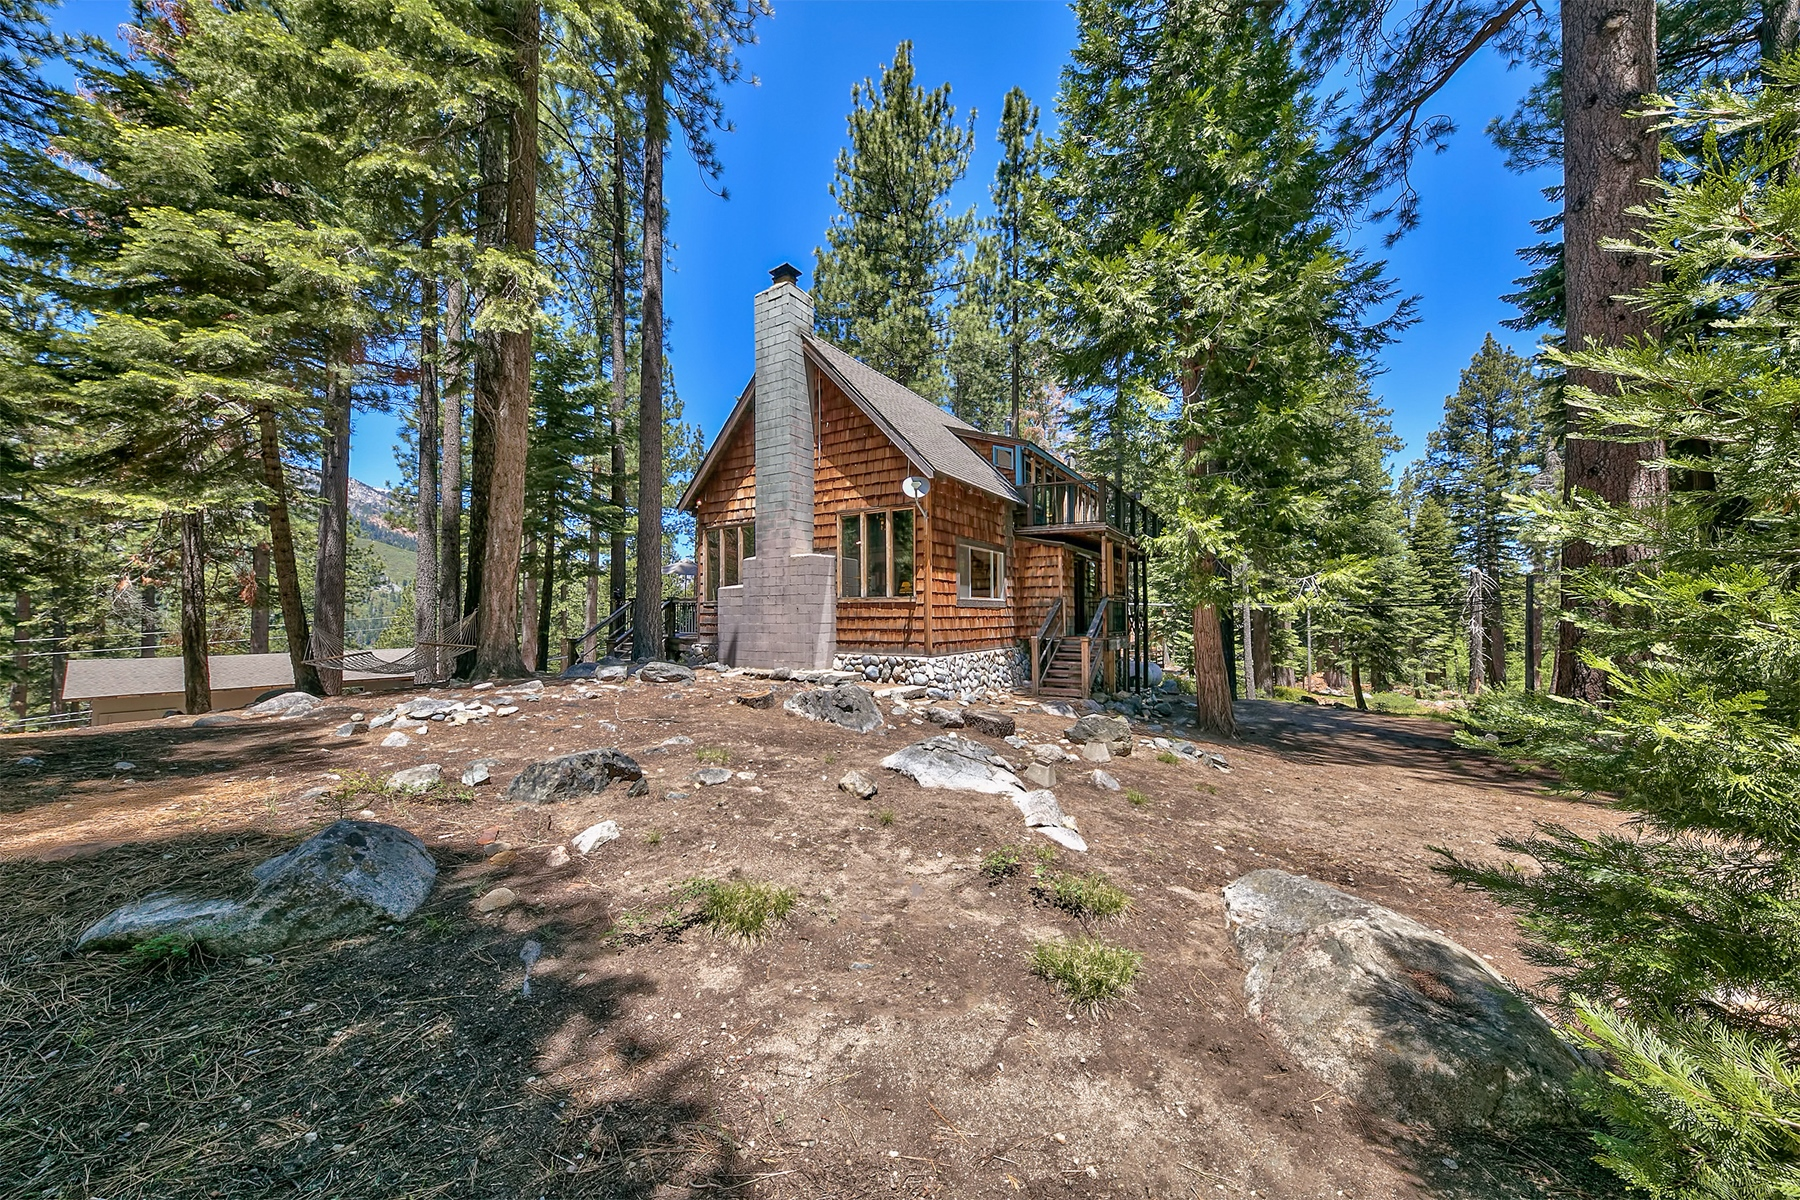 Single Family Homes for Active at 936 Emigrant Road, South Lake Tahoe, CA 96150 936 Emigrant Road South Lake Tahoe, California 96150 United States